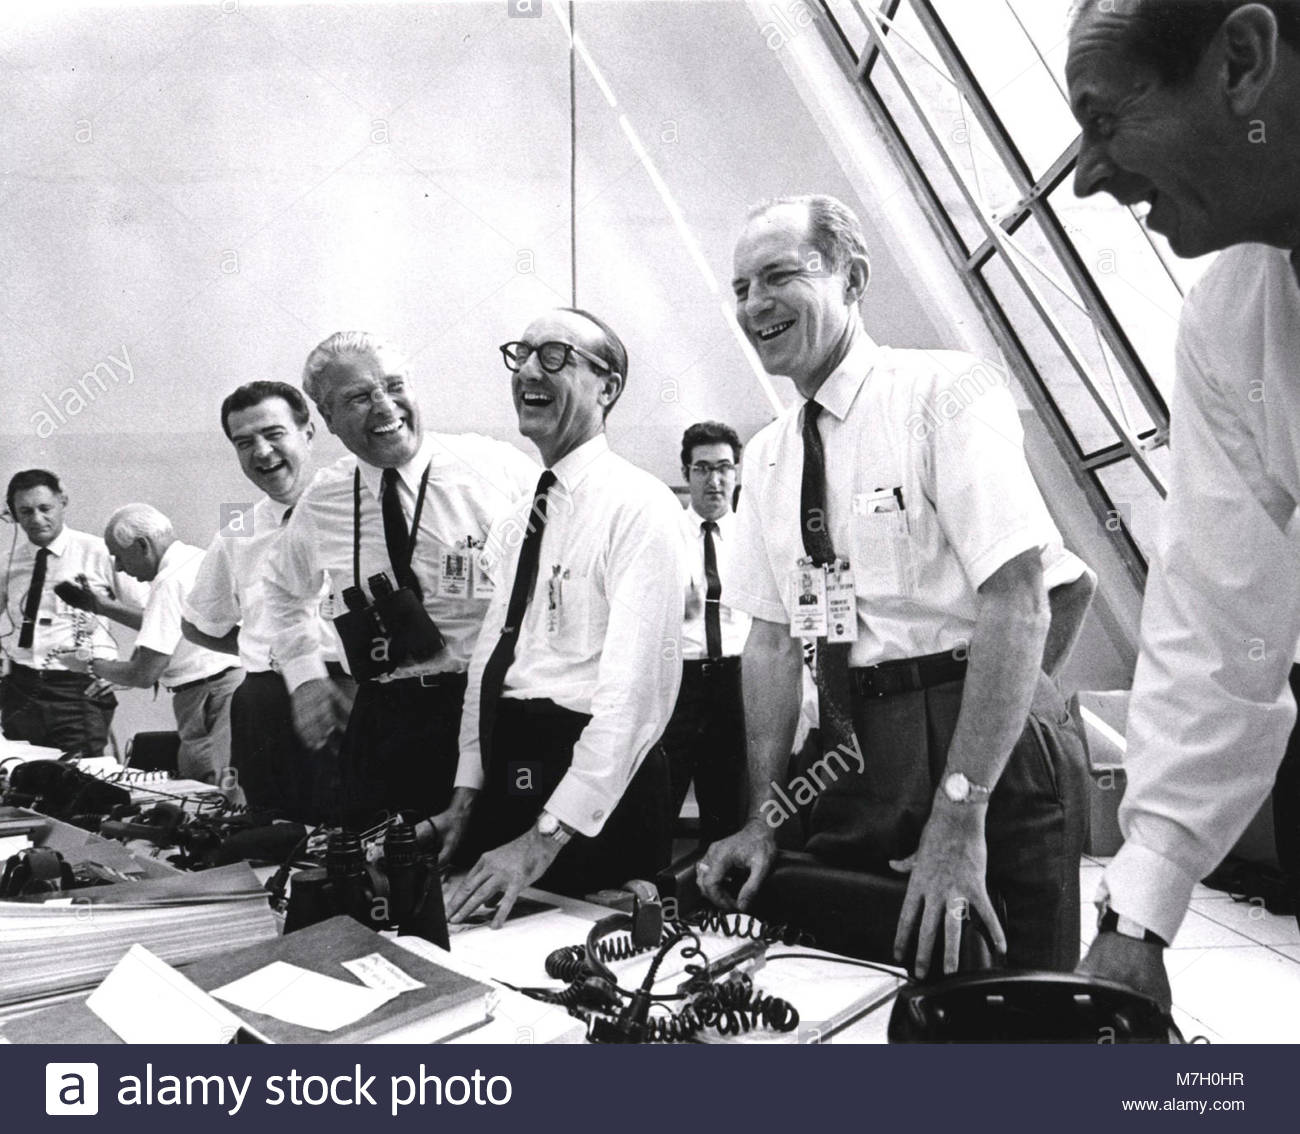 Moon Bound - Apollo 11. Apollo 11 mission officials relax in the Launch Control Center following the successful - Stock Image